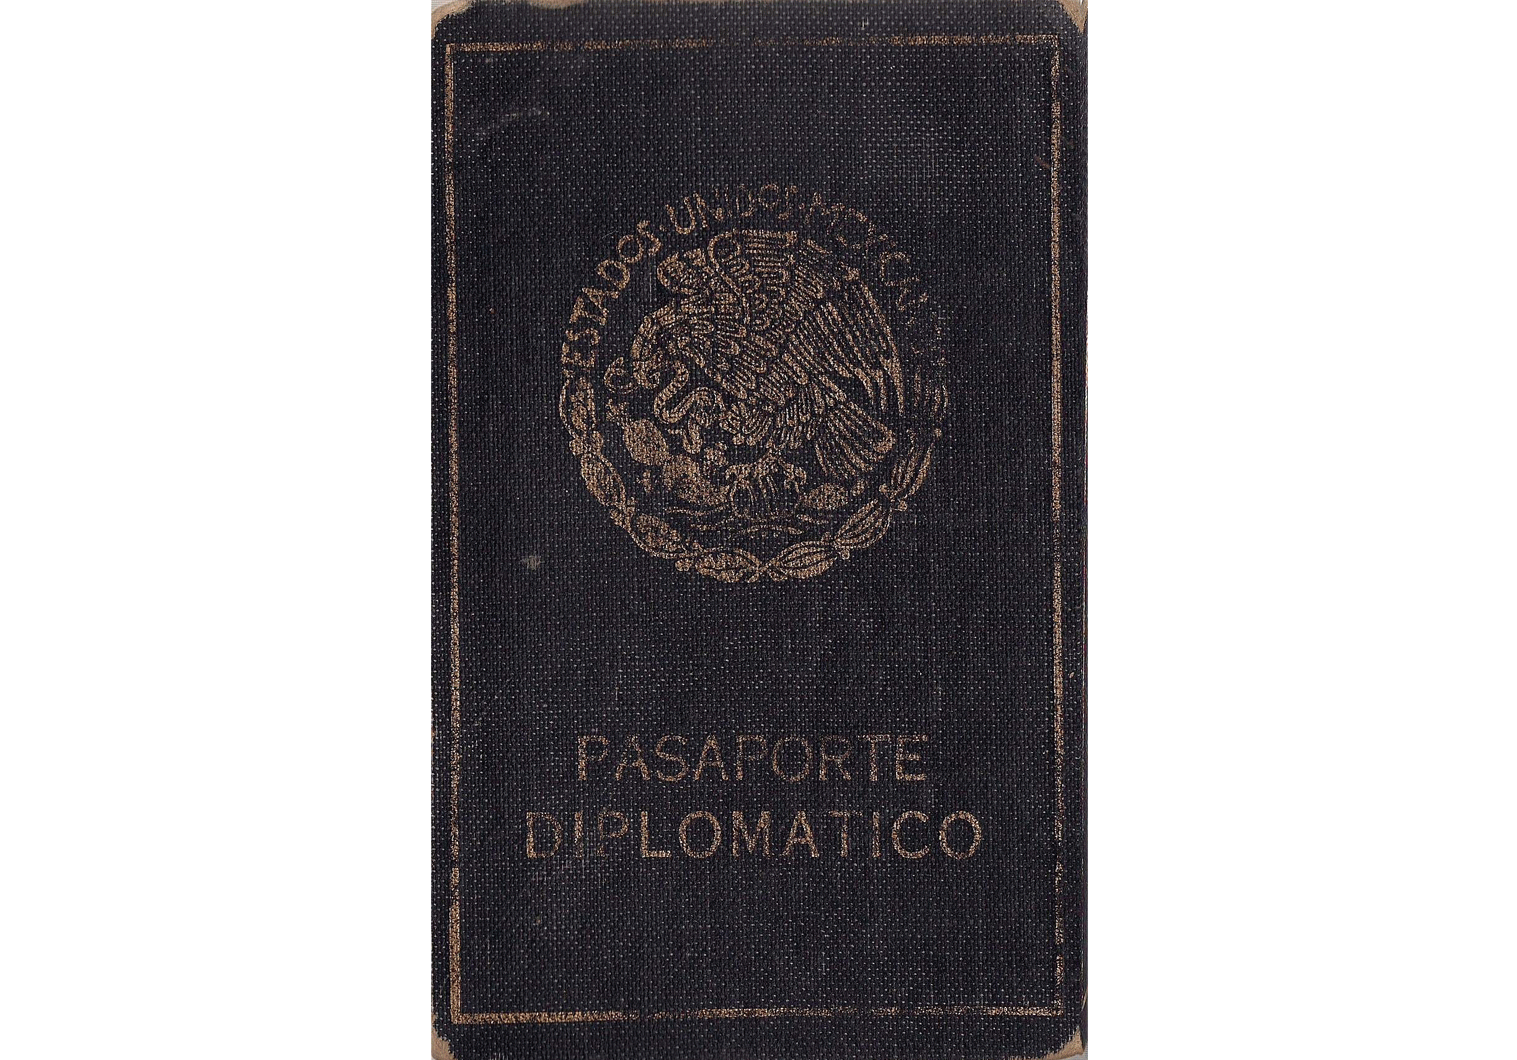 Interesting Mexican diplomatic passport